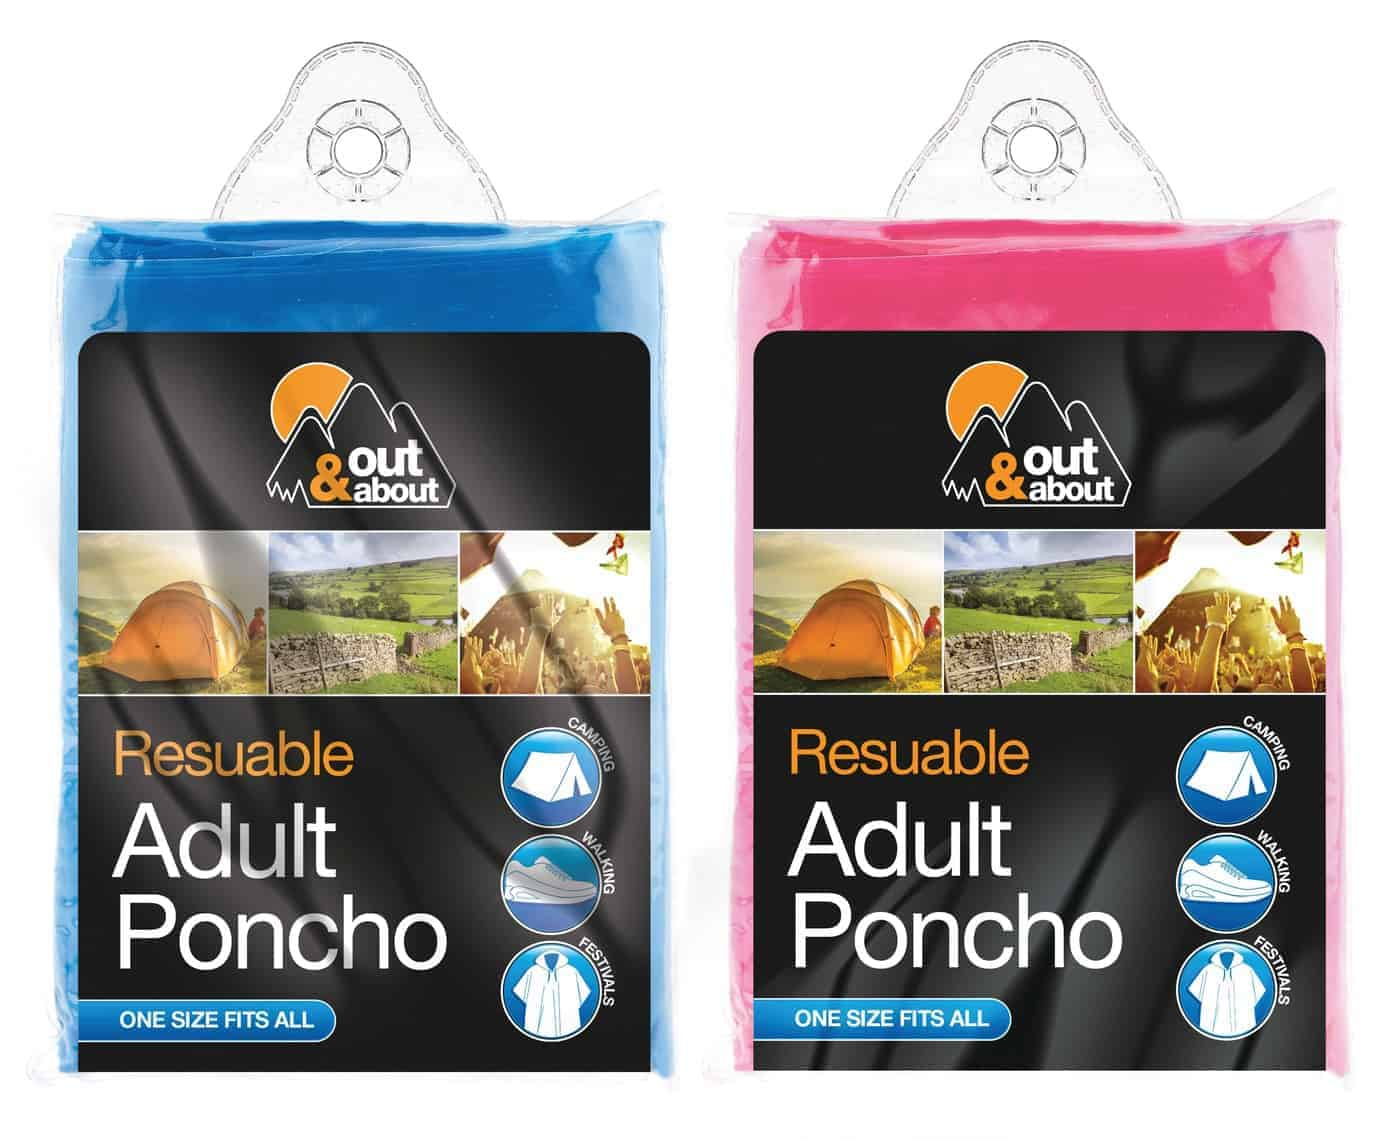 Out and About Adult Poncho